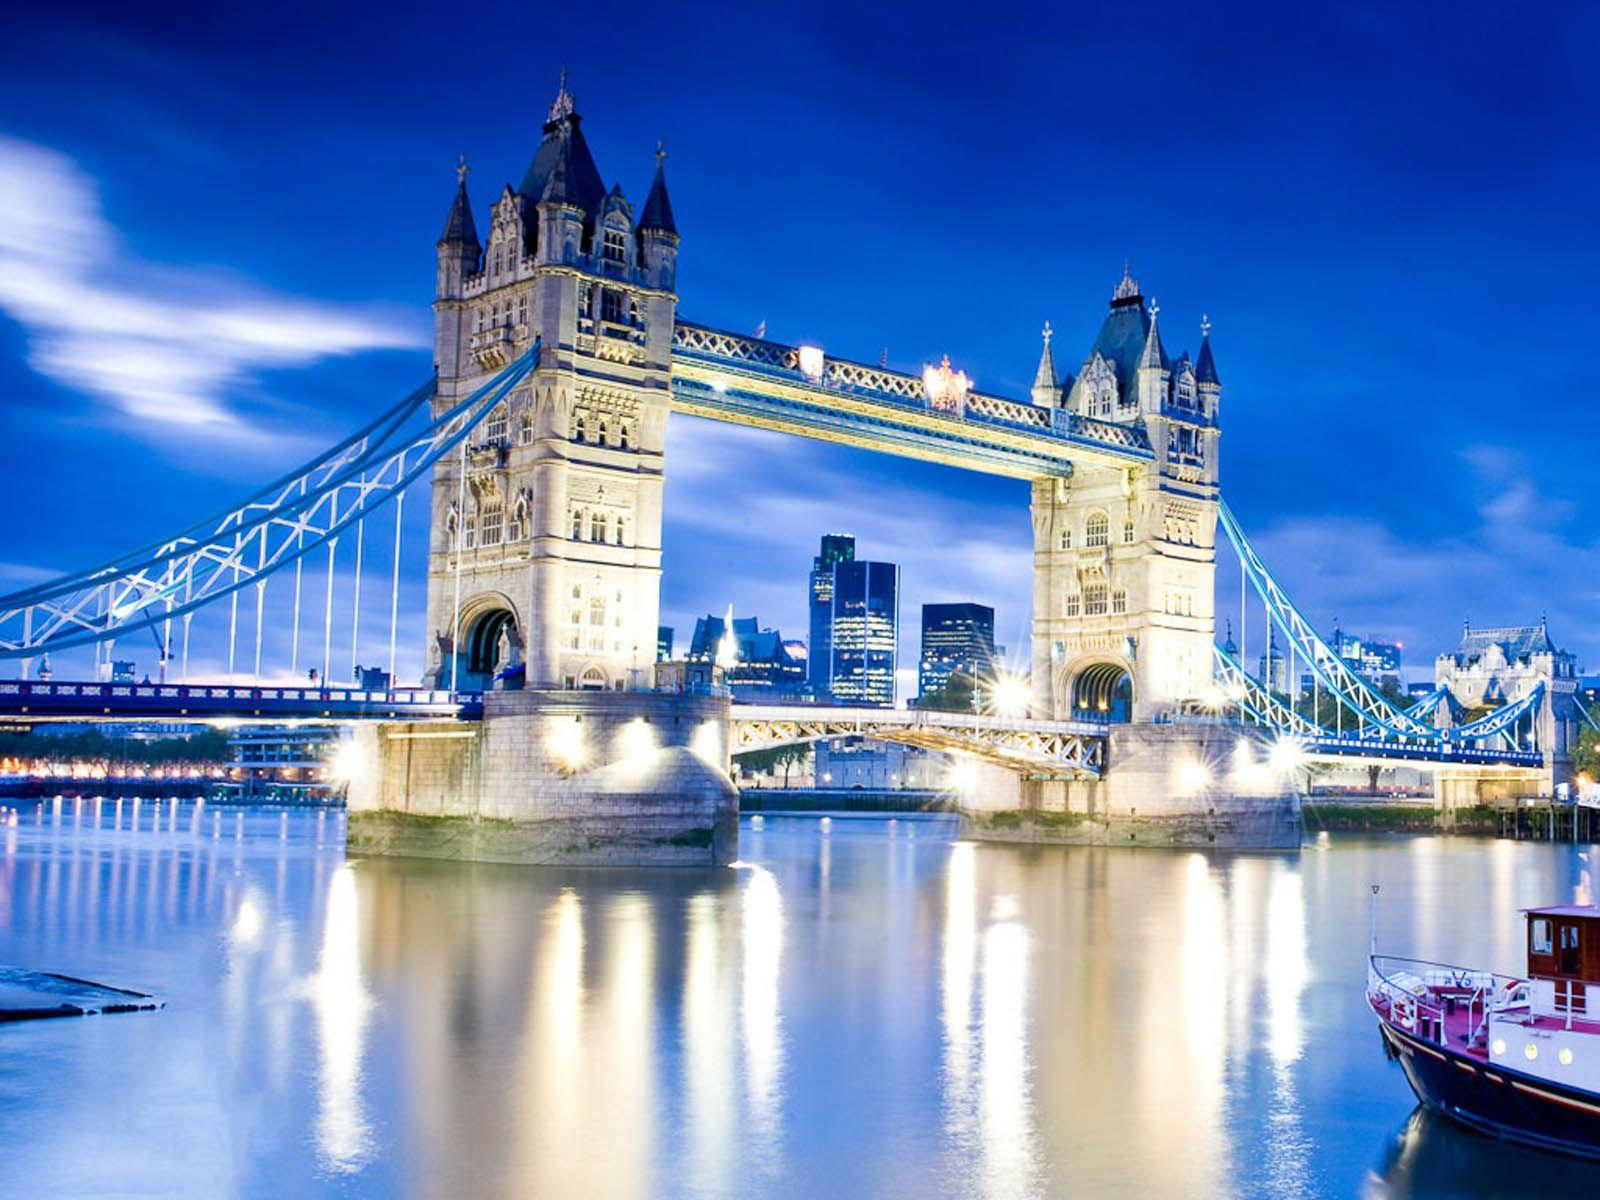 London Bridge Background Computer Desktop Wallpapers - Wallpapers Browse